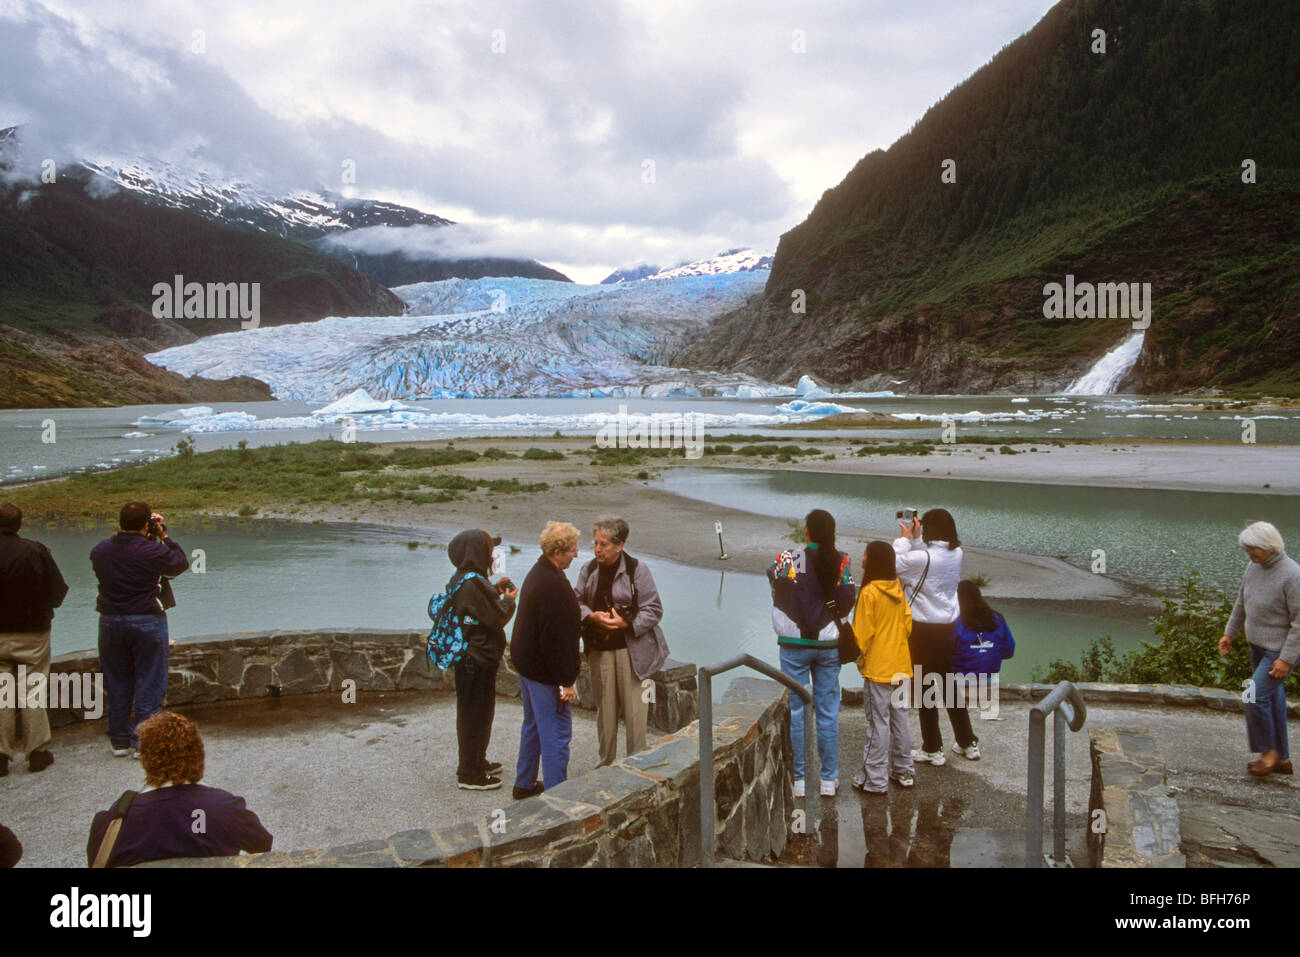 river of ice snow frozen blue retreat melt global warming - Stock Image